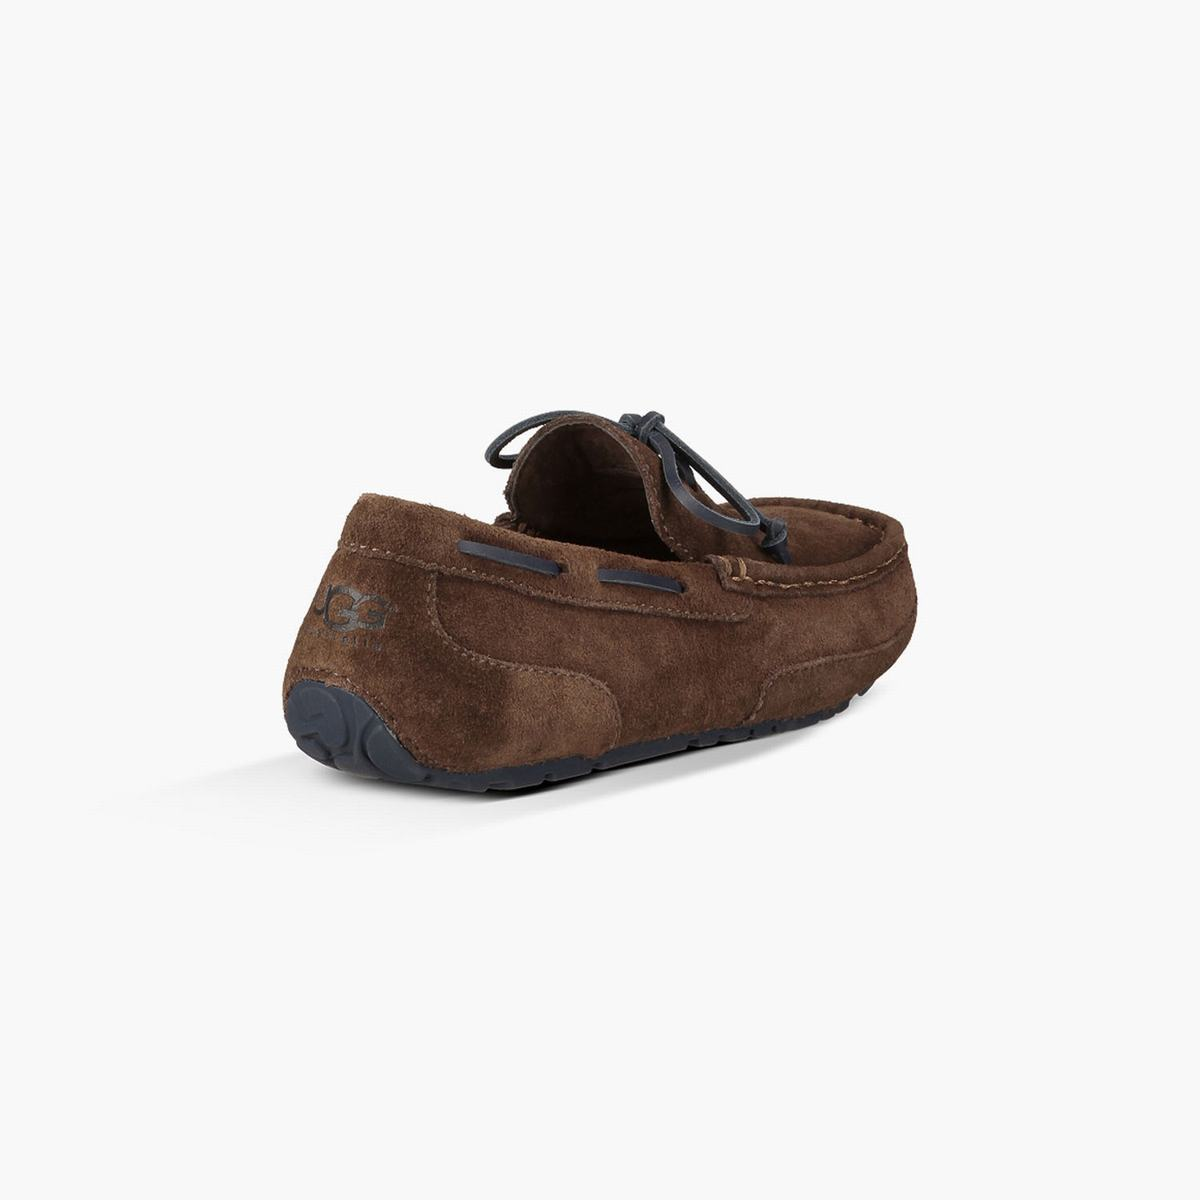 2810288d9d2 Low Price On Ugg Moccasins - Ugg Mens Chester Loafer Chocolate NZ